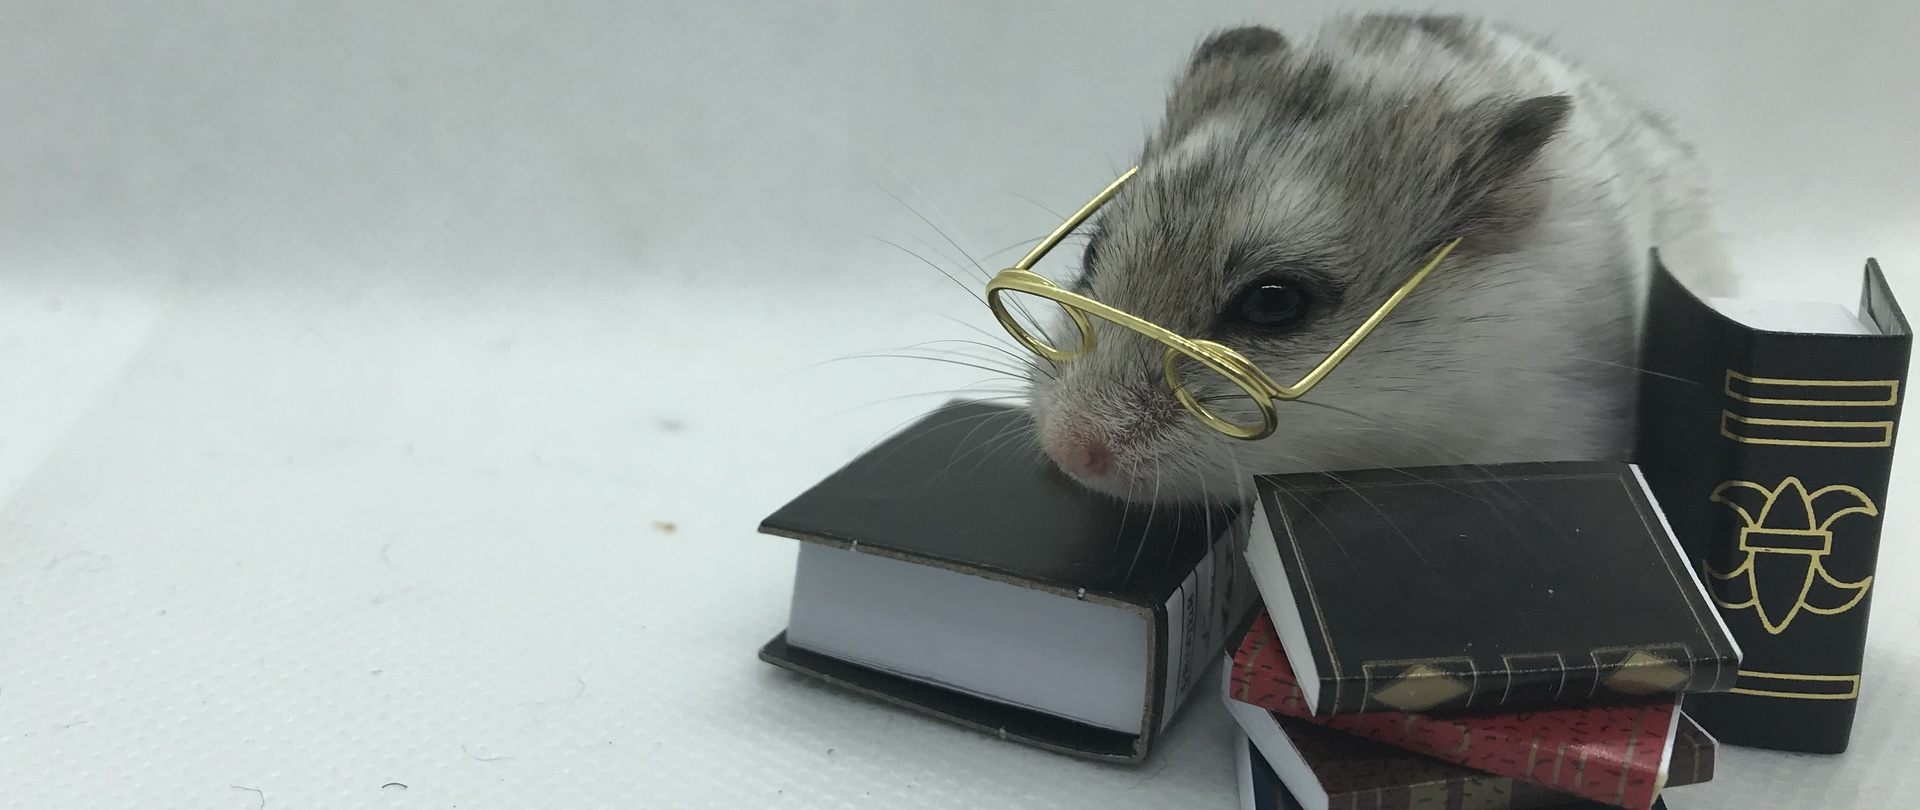 Hamster resting on books while wearing glasses